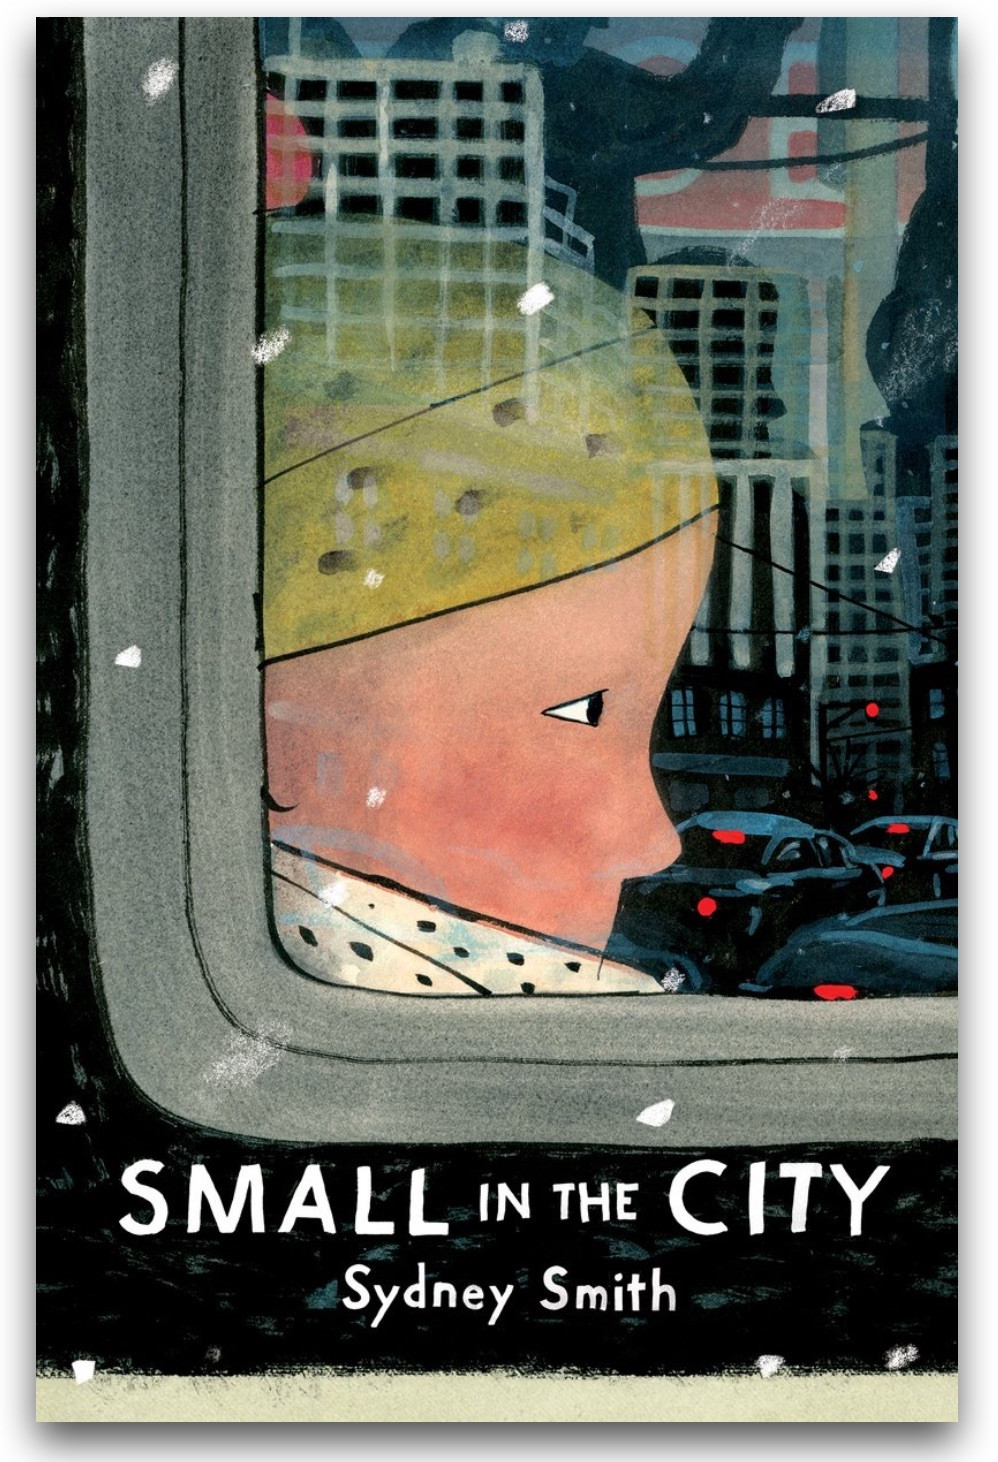 Cover of book with a drawing of a child looking out a window at a city scape. Small in the City by Sydney Smith written across the bottom.